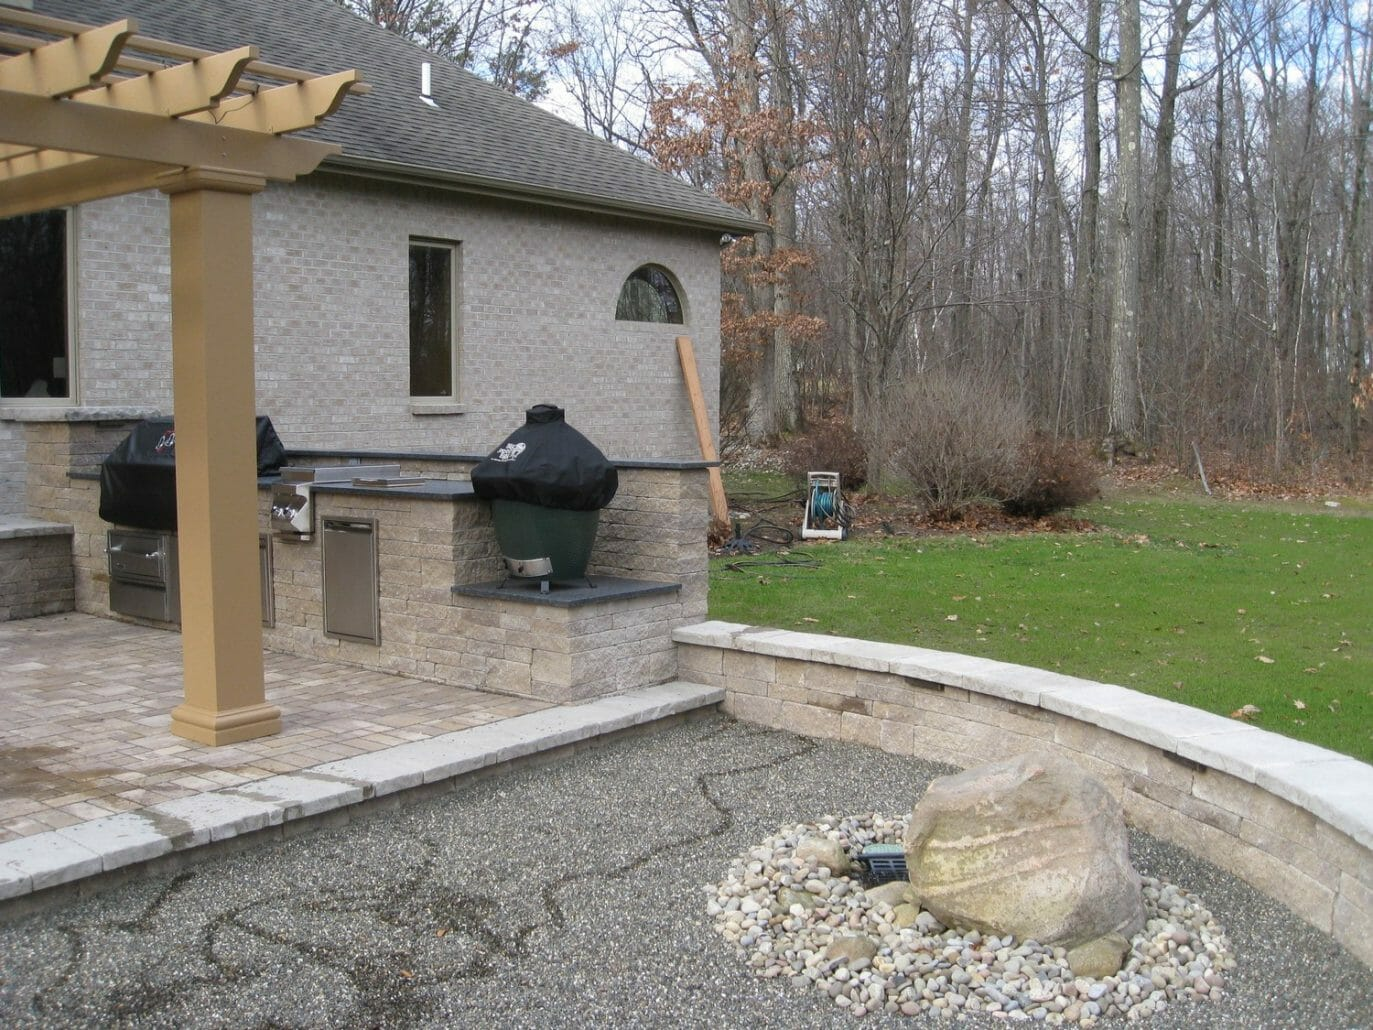 Wynantskill NY outdoor kitchen patio design 1373x1030 - Landscape Plan Installation and Project Management